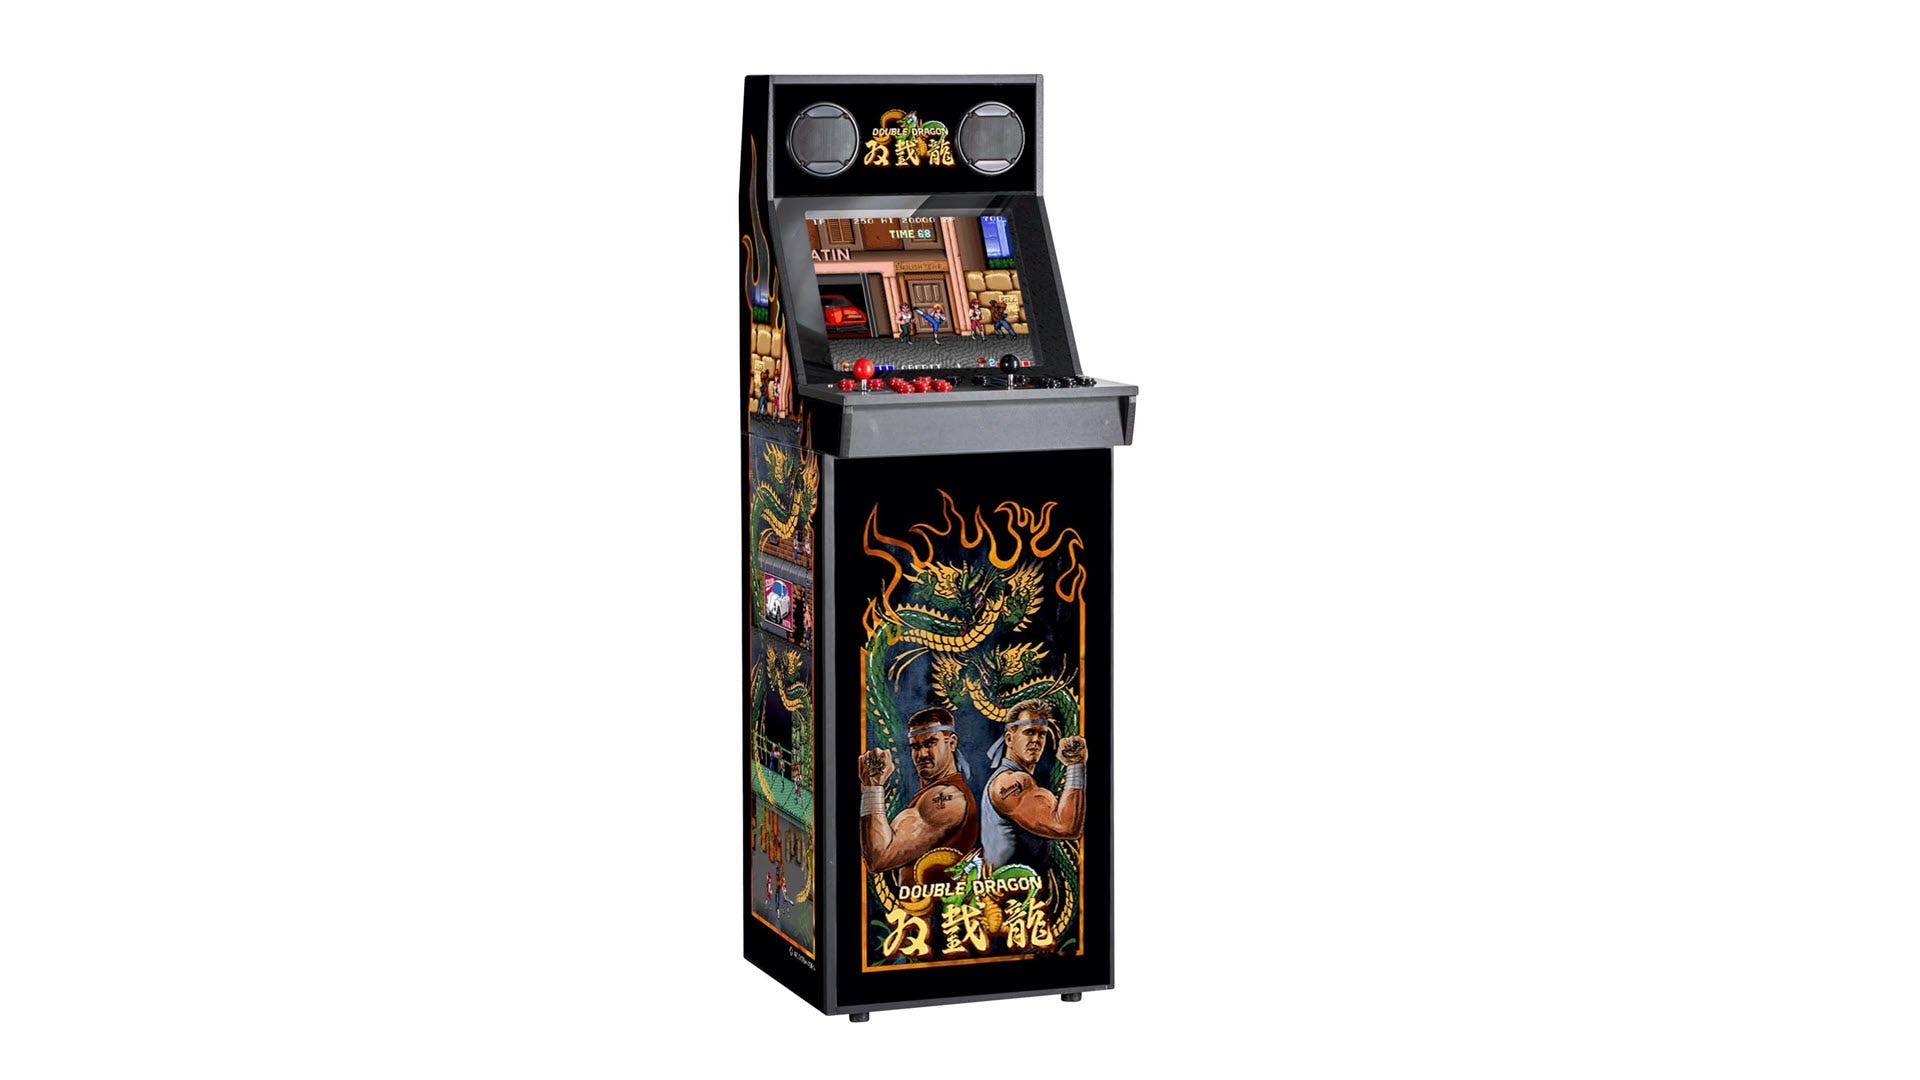 A 'Double Dragon' themed arcade machine.